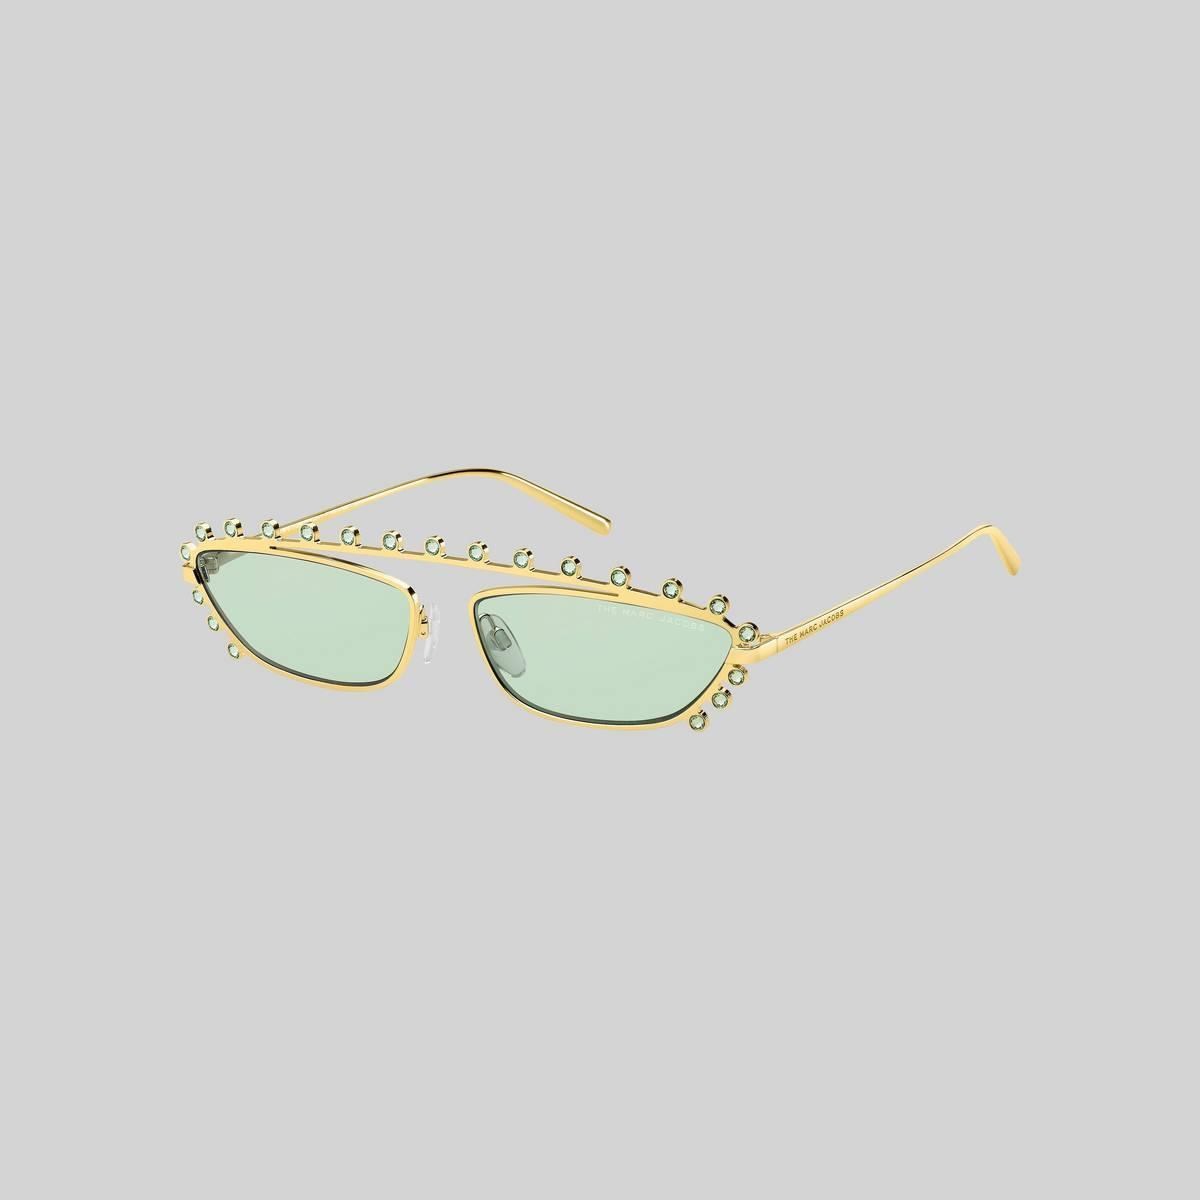 The Strass Cat Eye Sunglasses